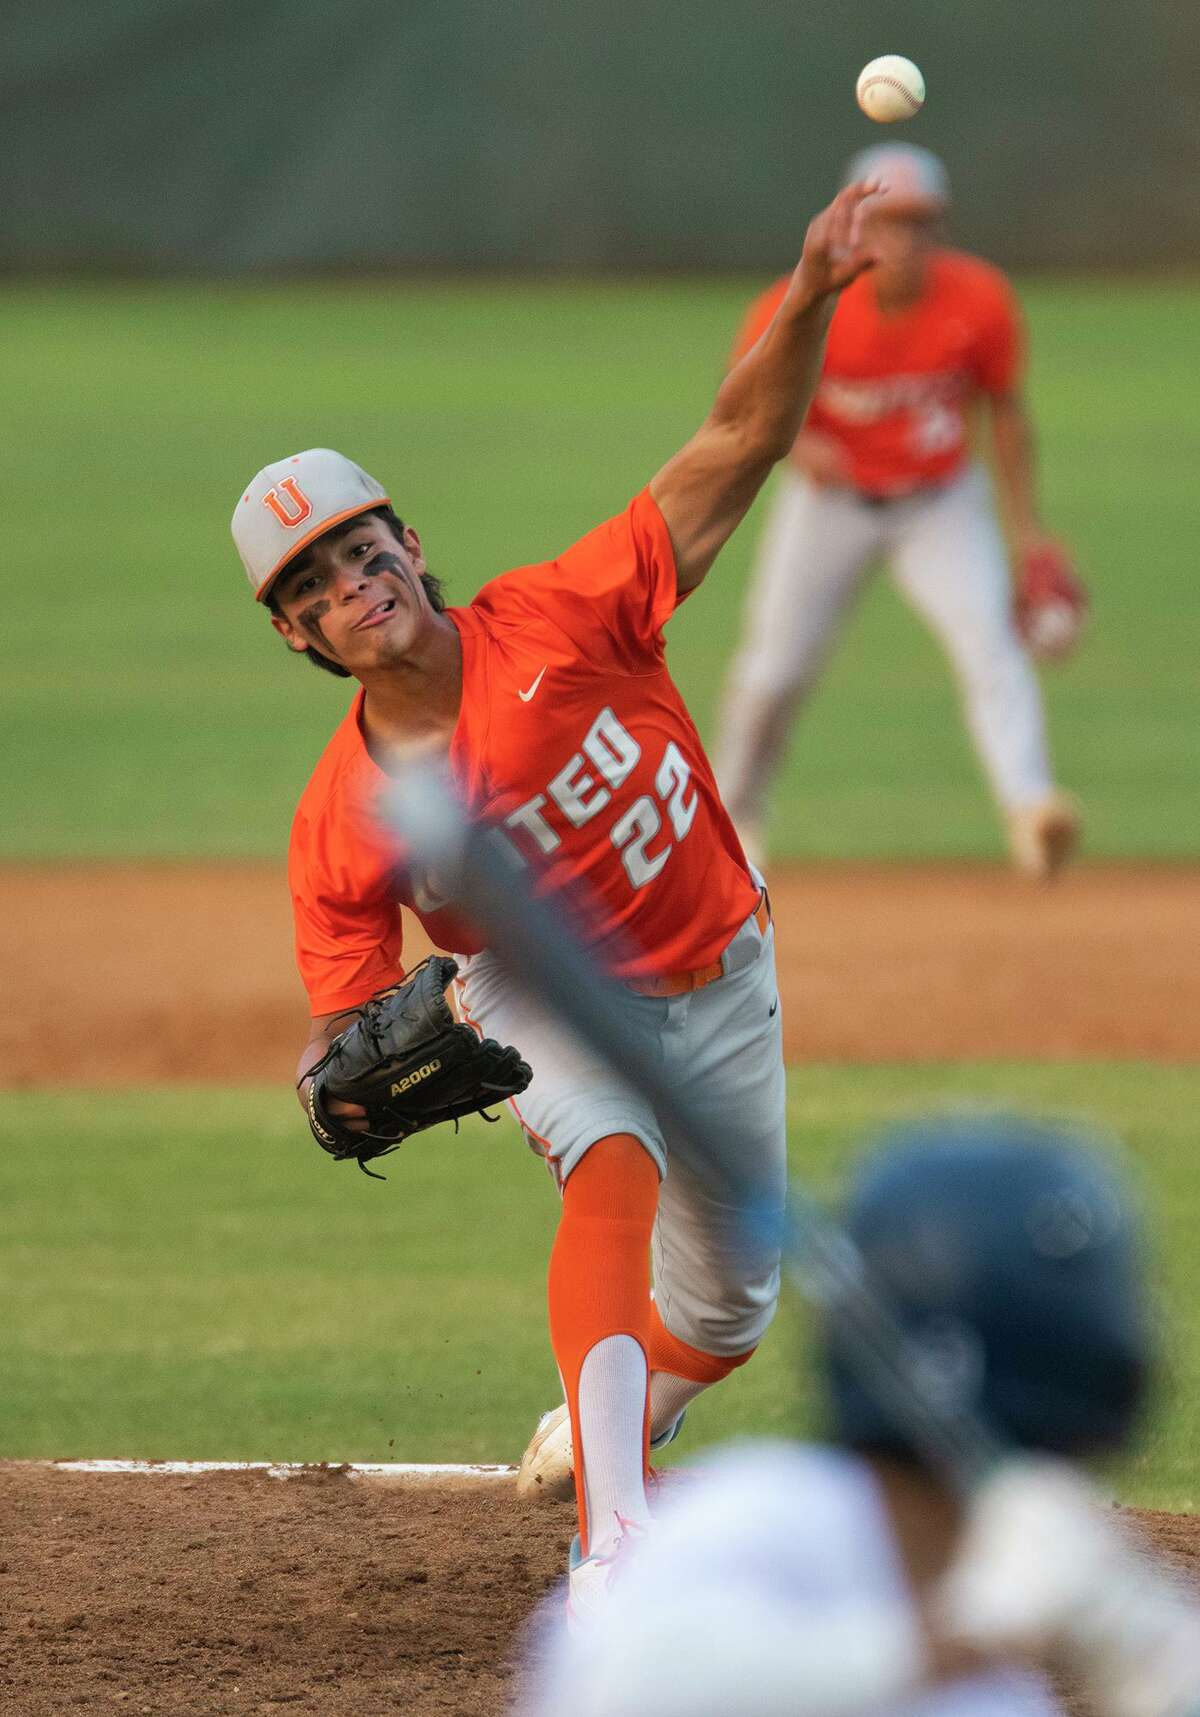 United's Albert Gonzalez shared this year's Pitcher of the Year honors.